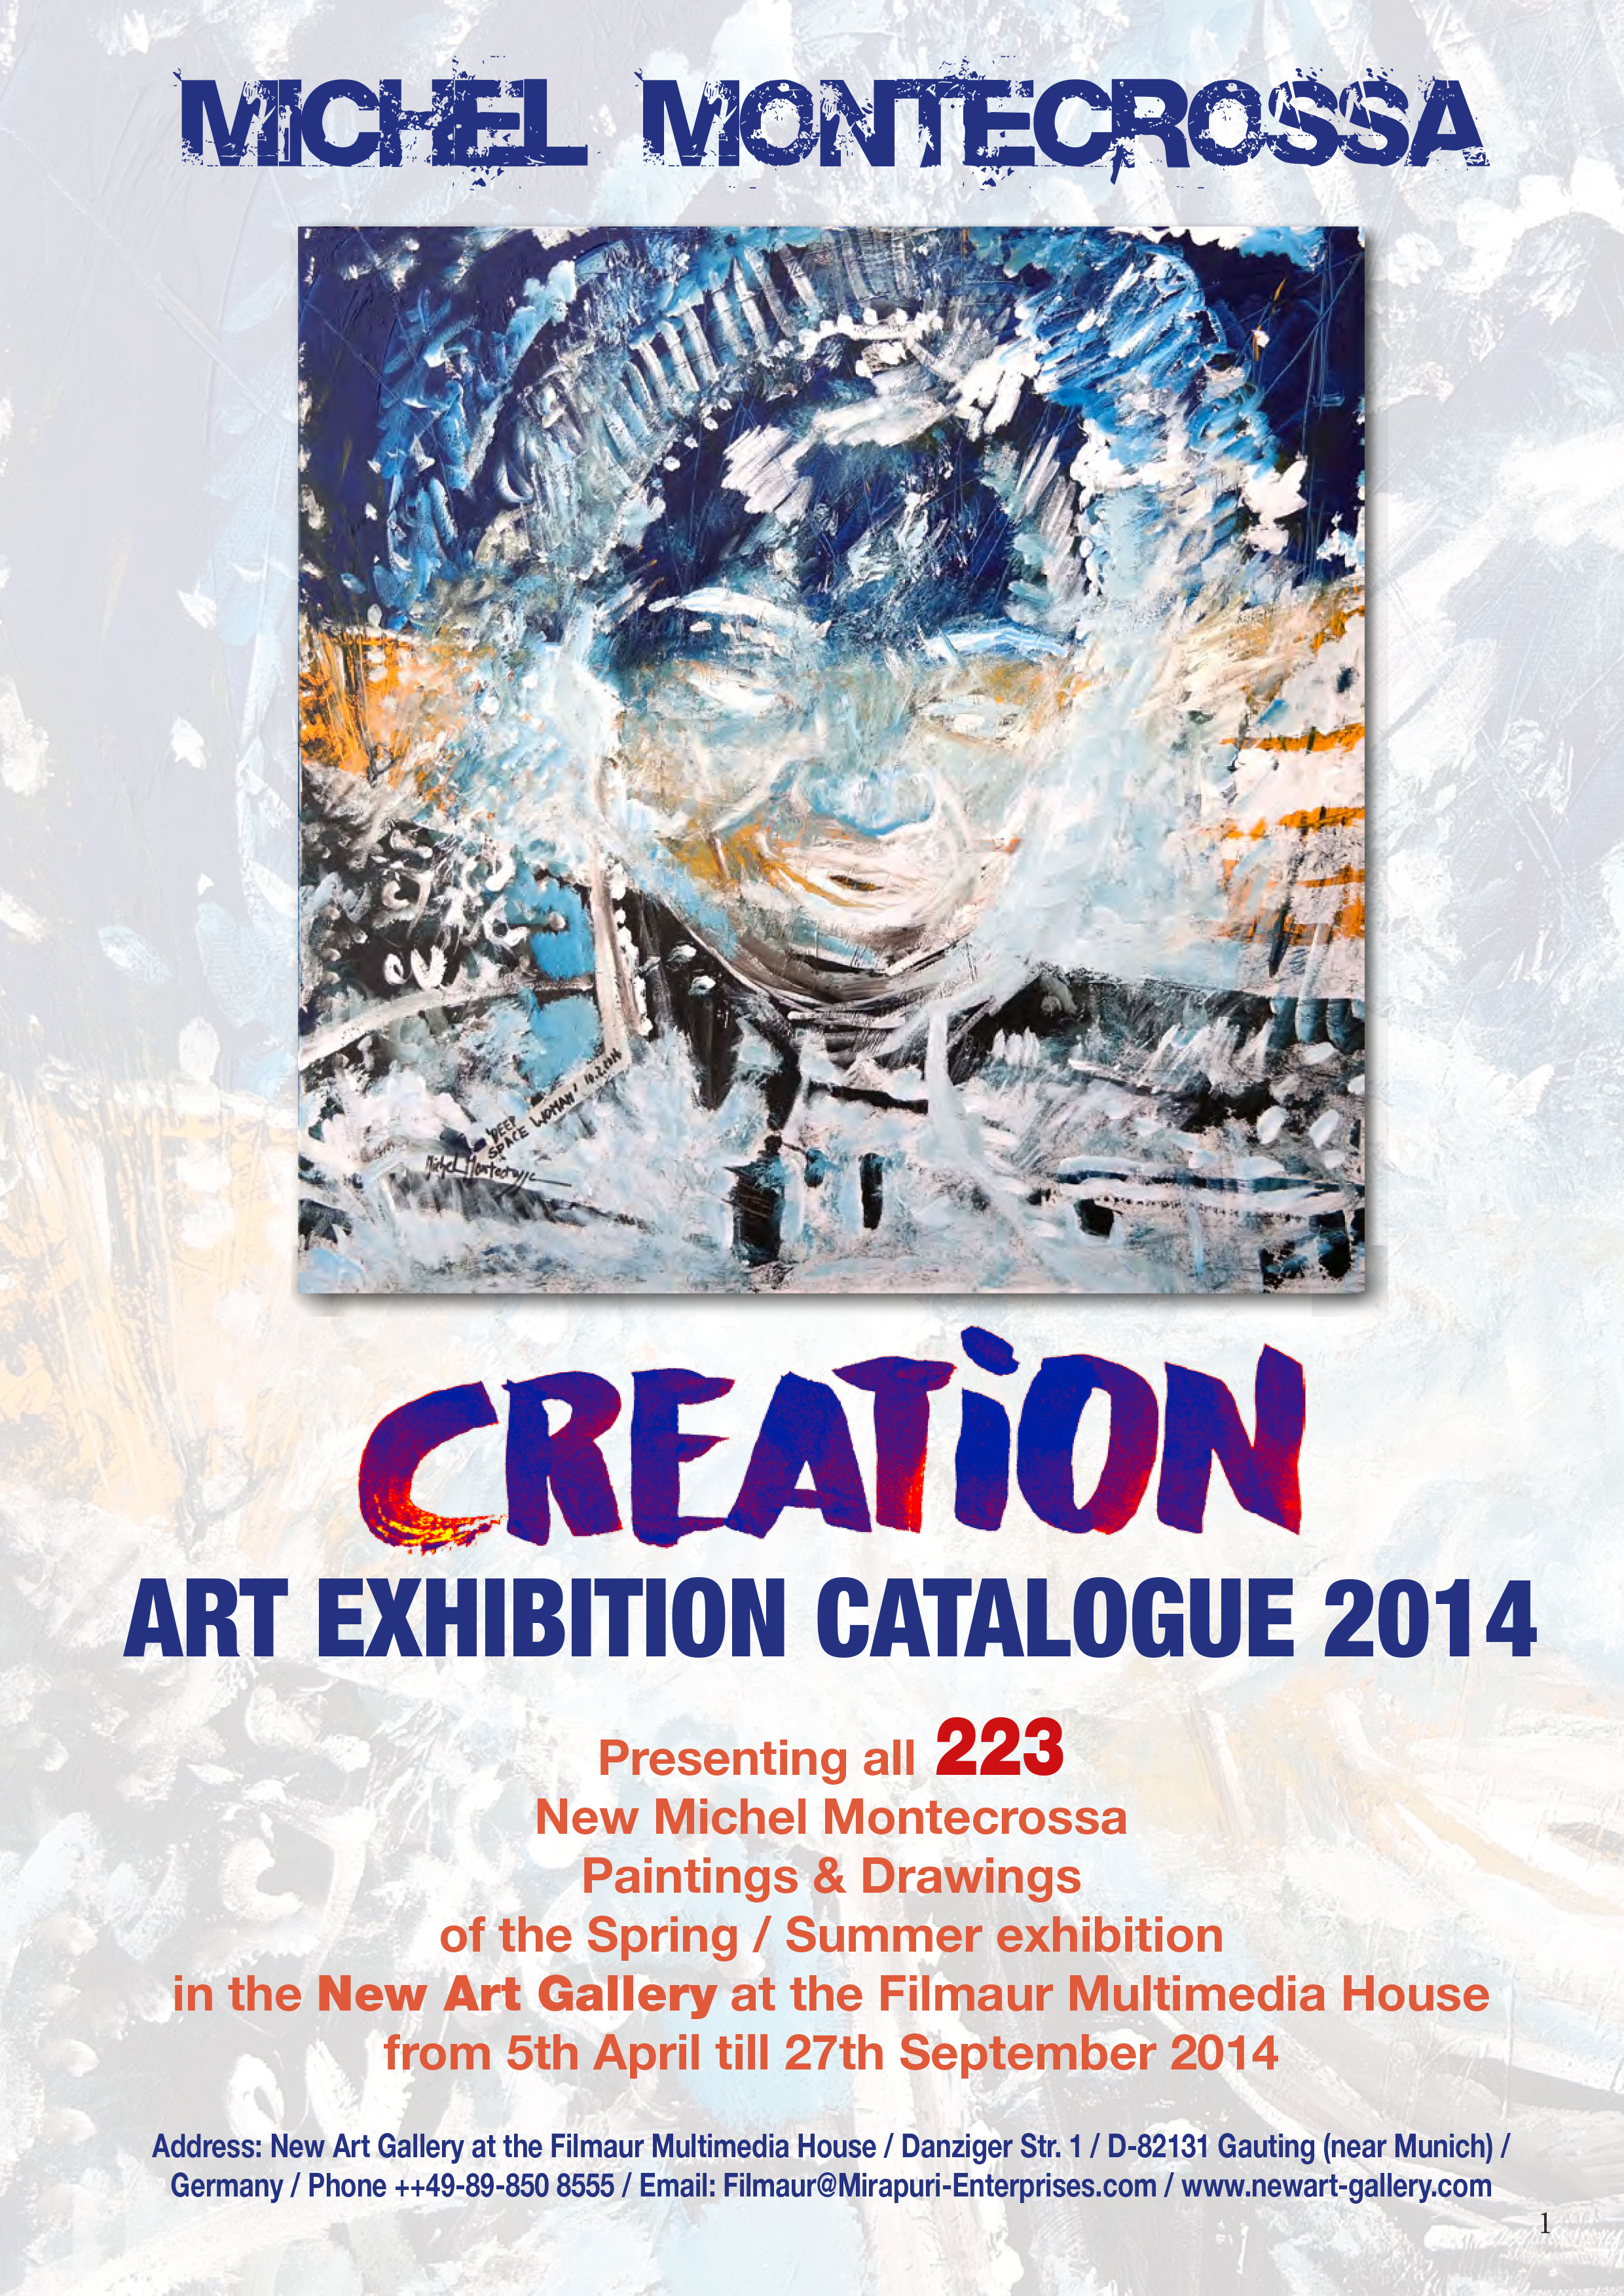 Creation Art Exhibition Catalogue 2014